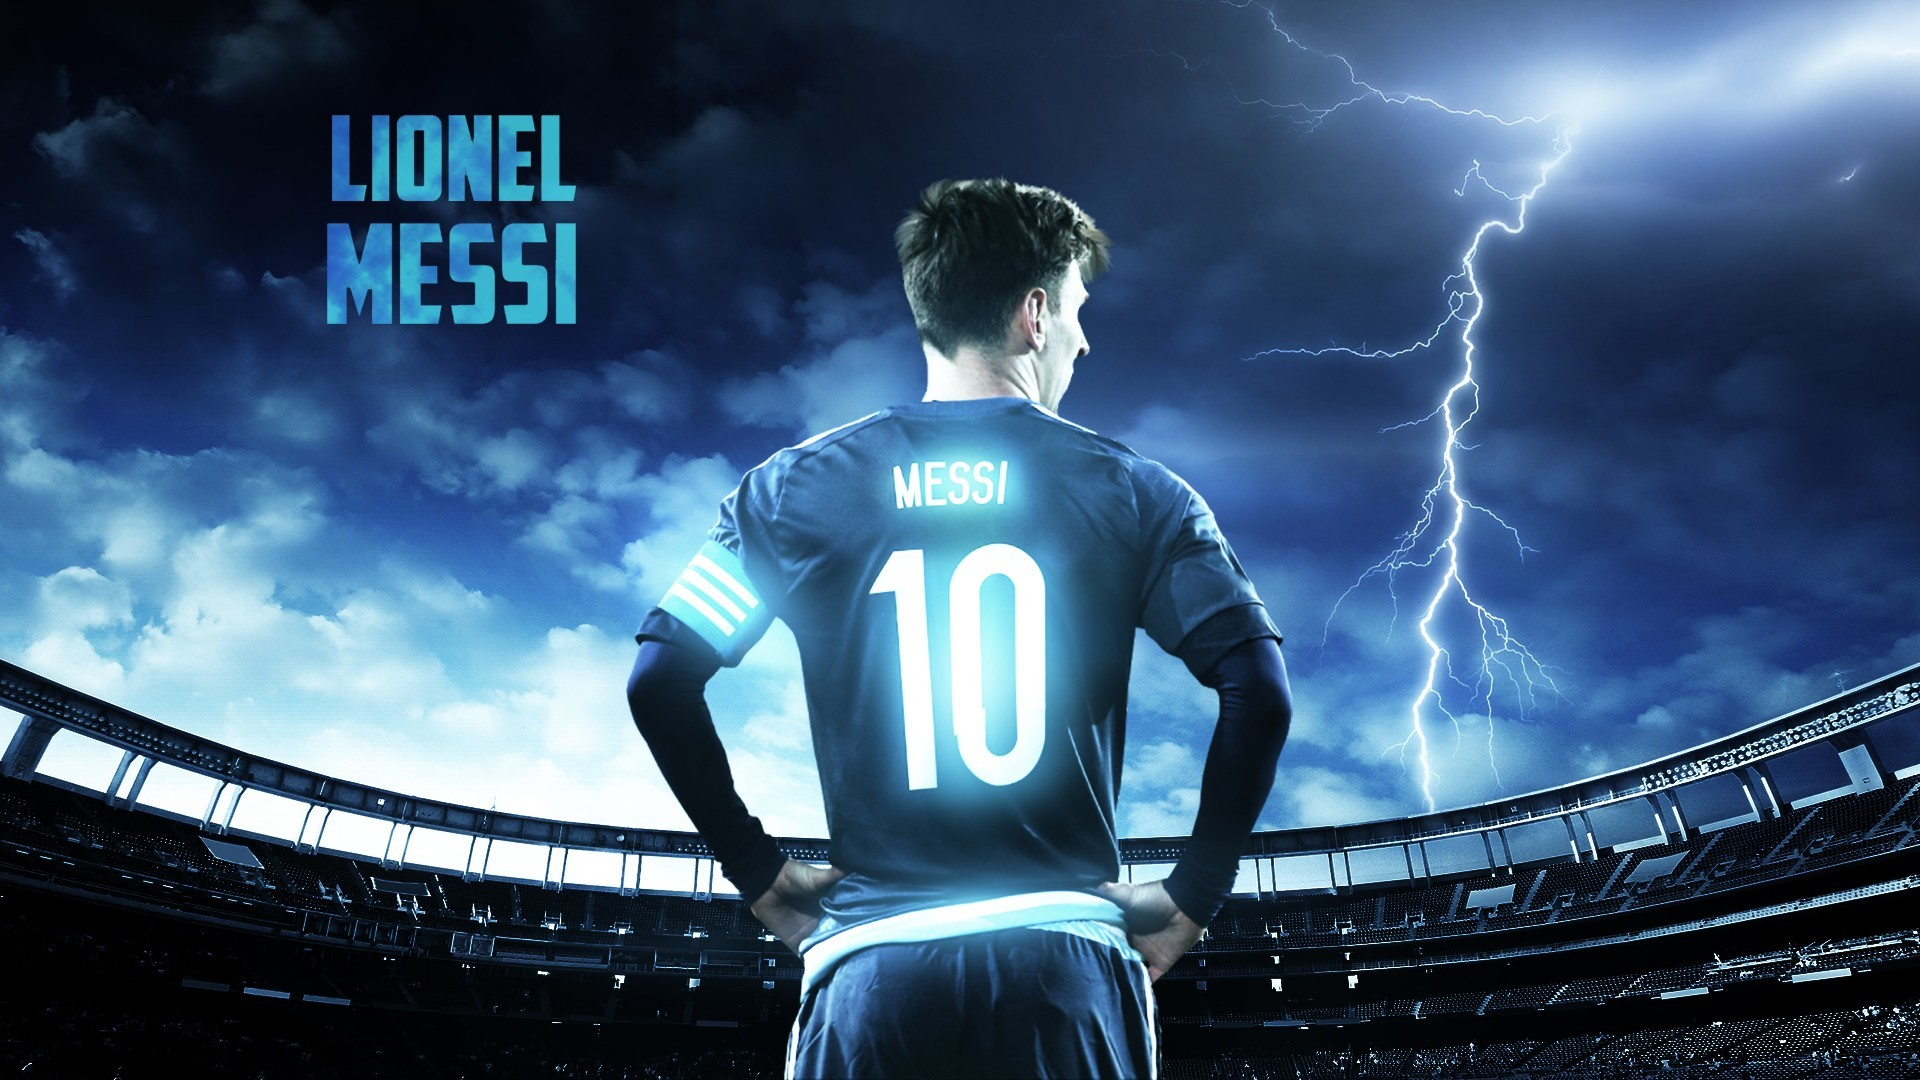 1920x1080 thunder stadium Leo Messi Lionel Messi screenshot player football player  computer wallpaper album cover